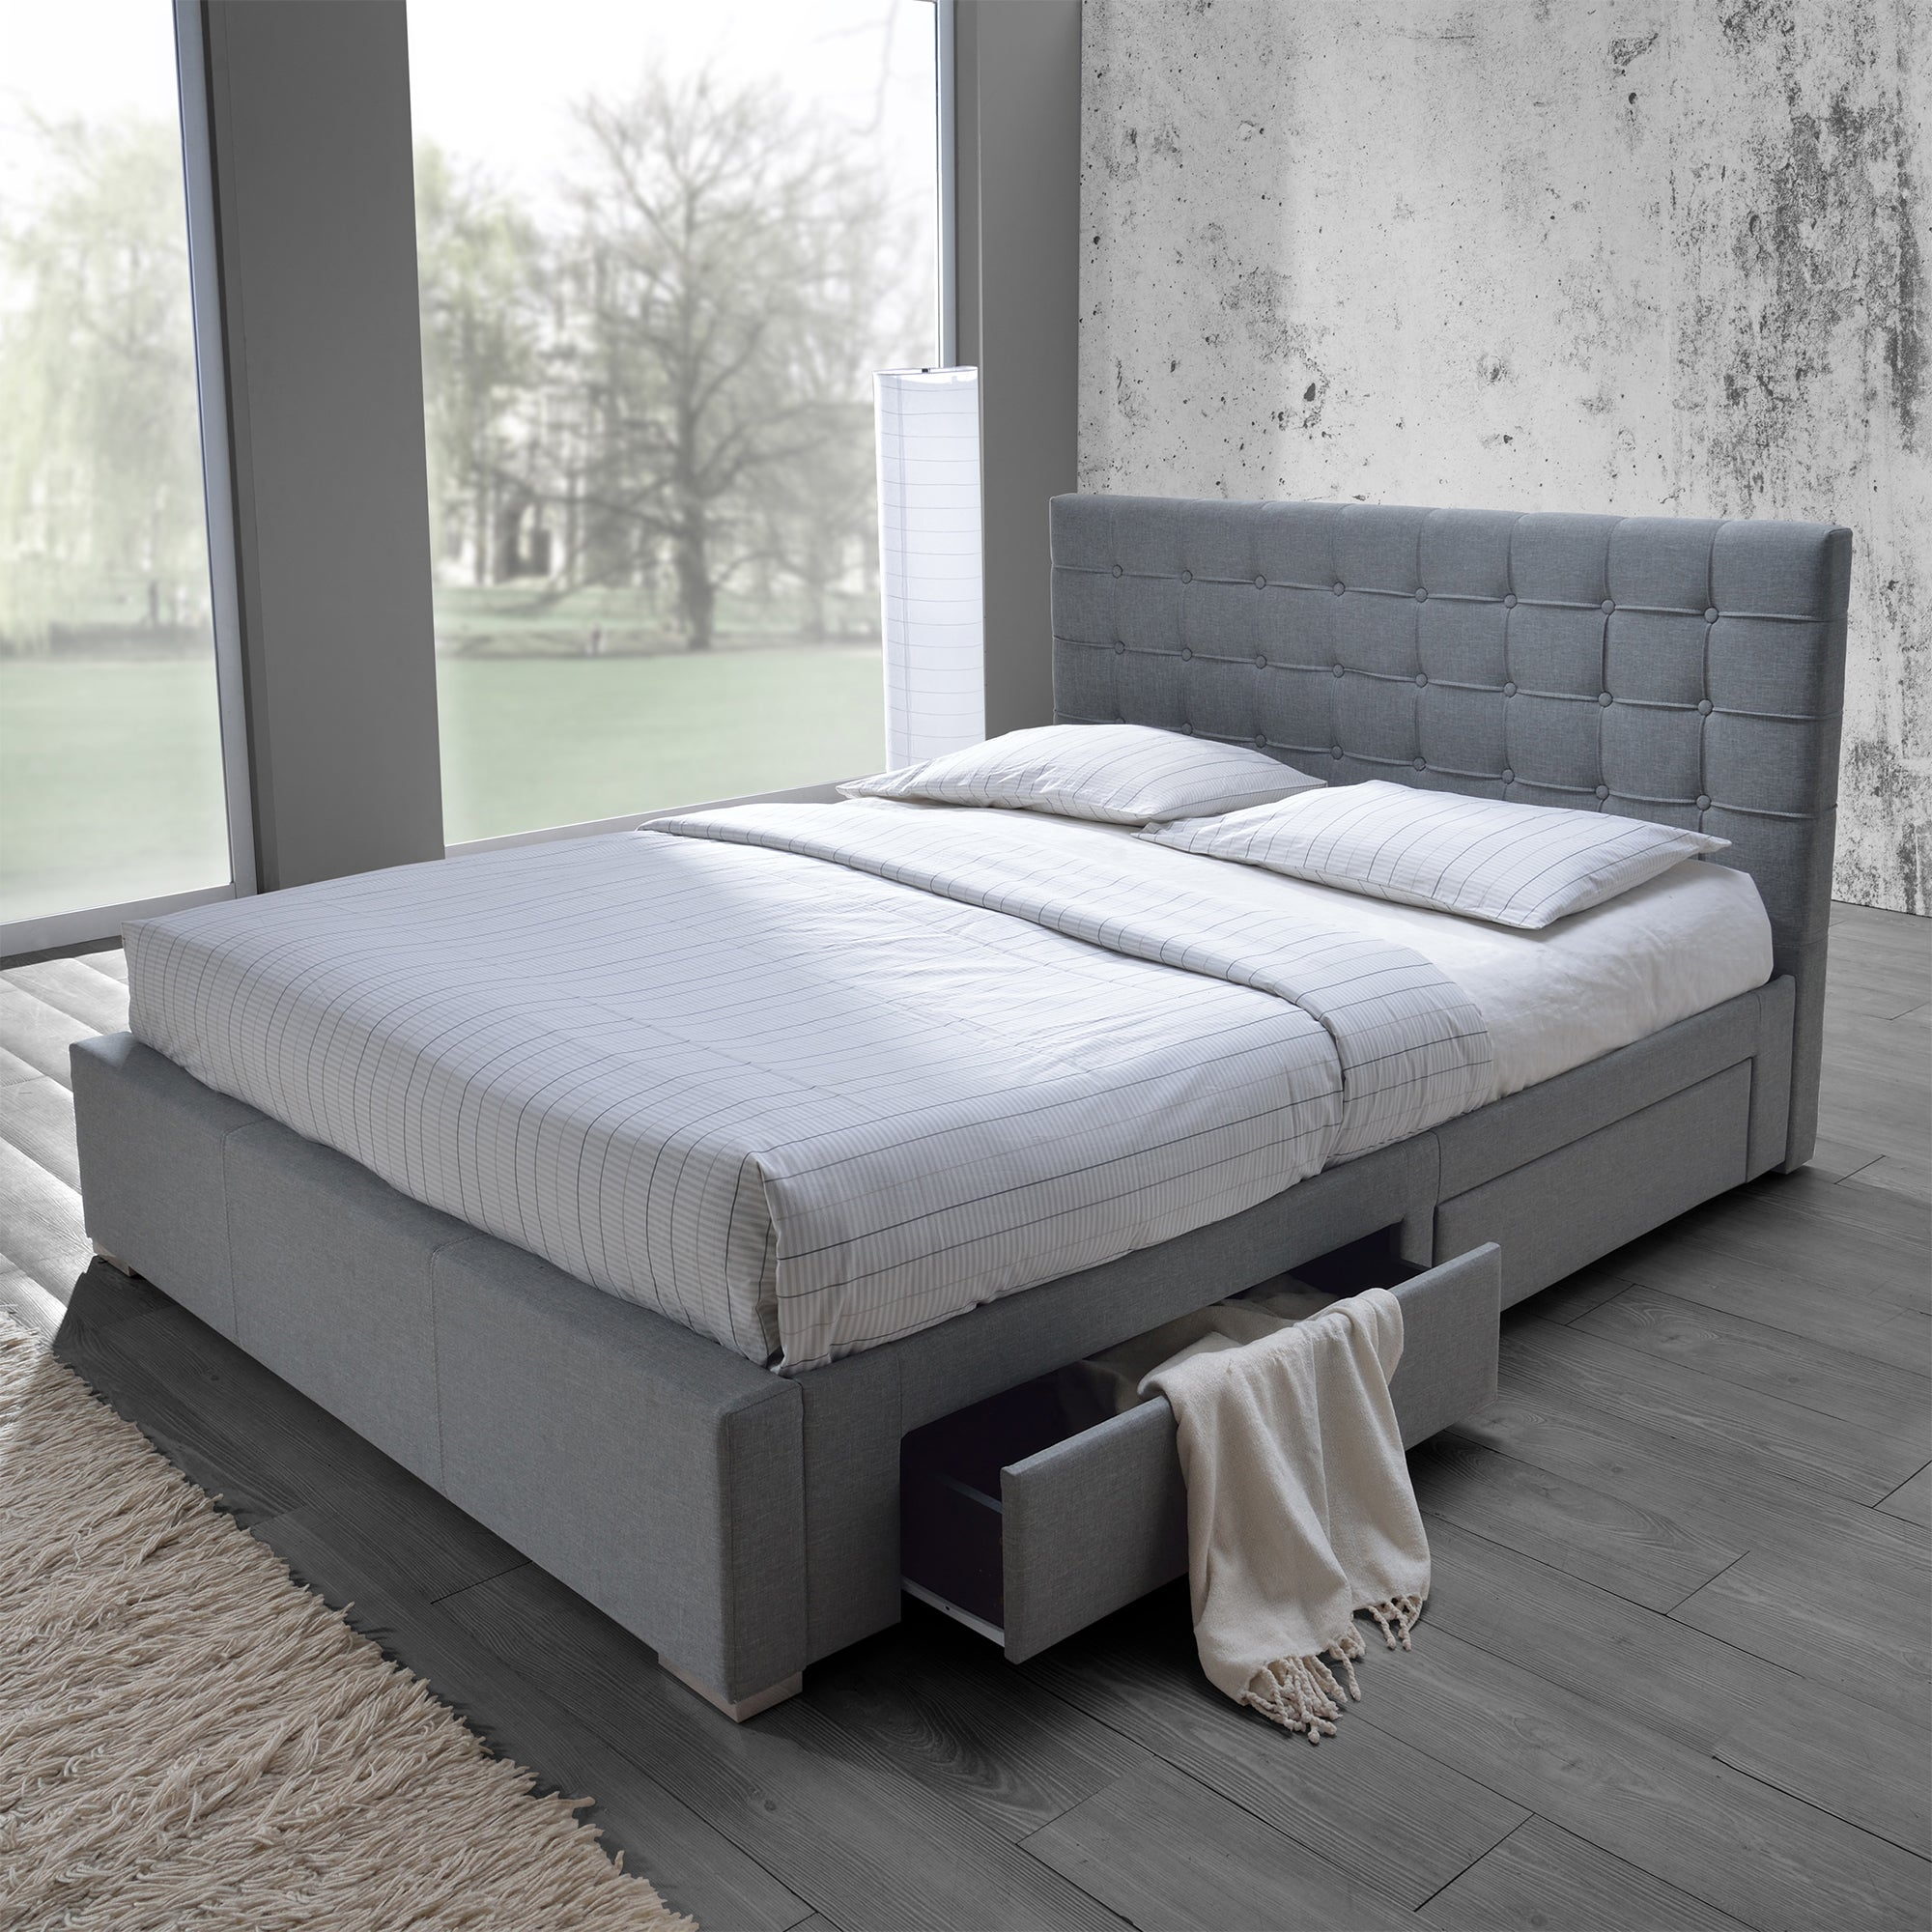 Shop baxton studio adonis modern and contemporary grey - Modern queen bed with storage ...